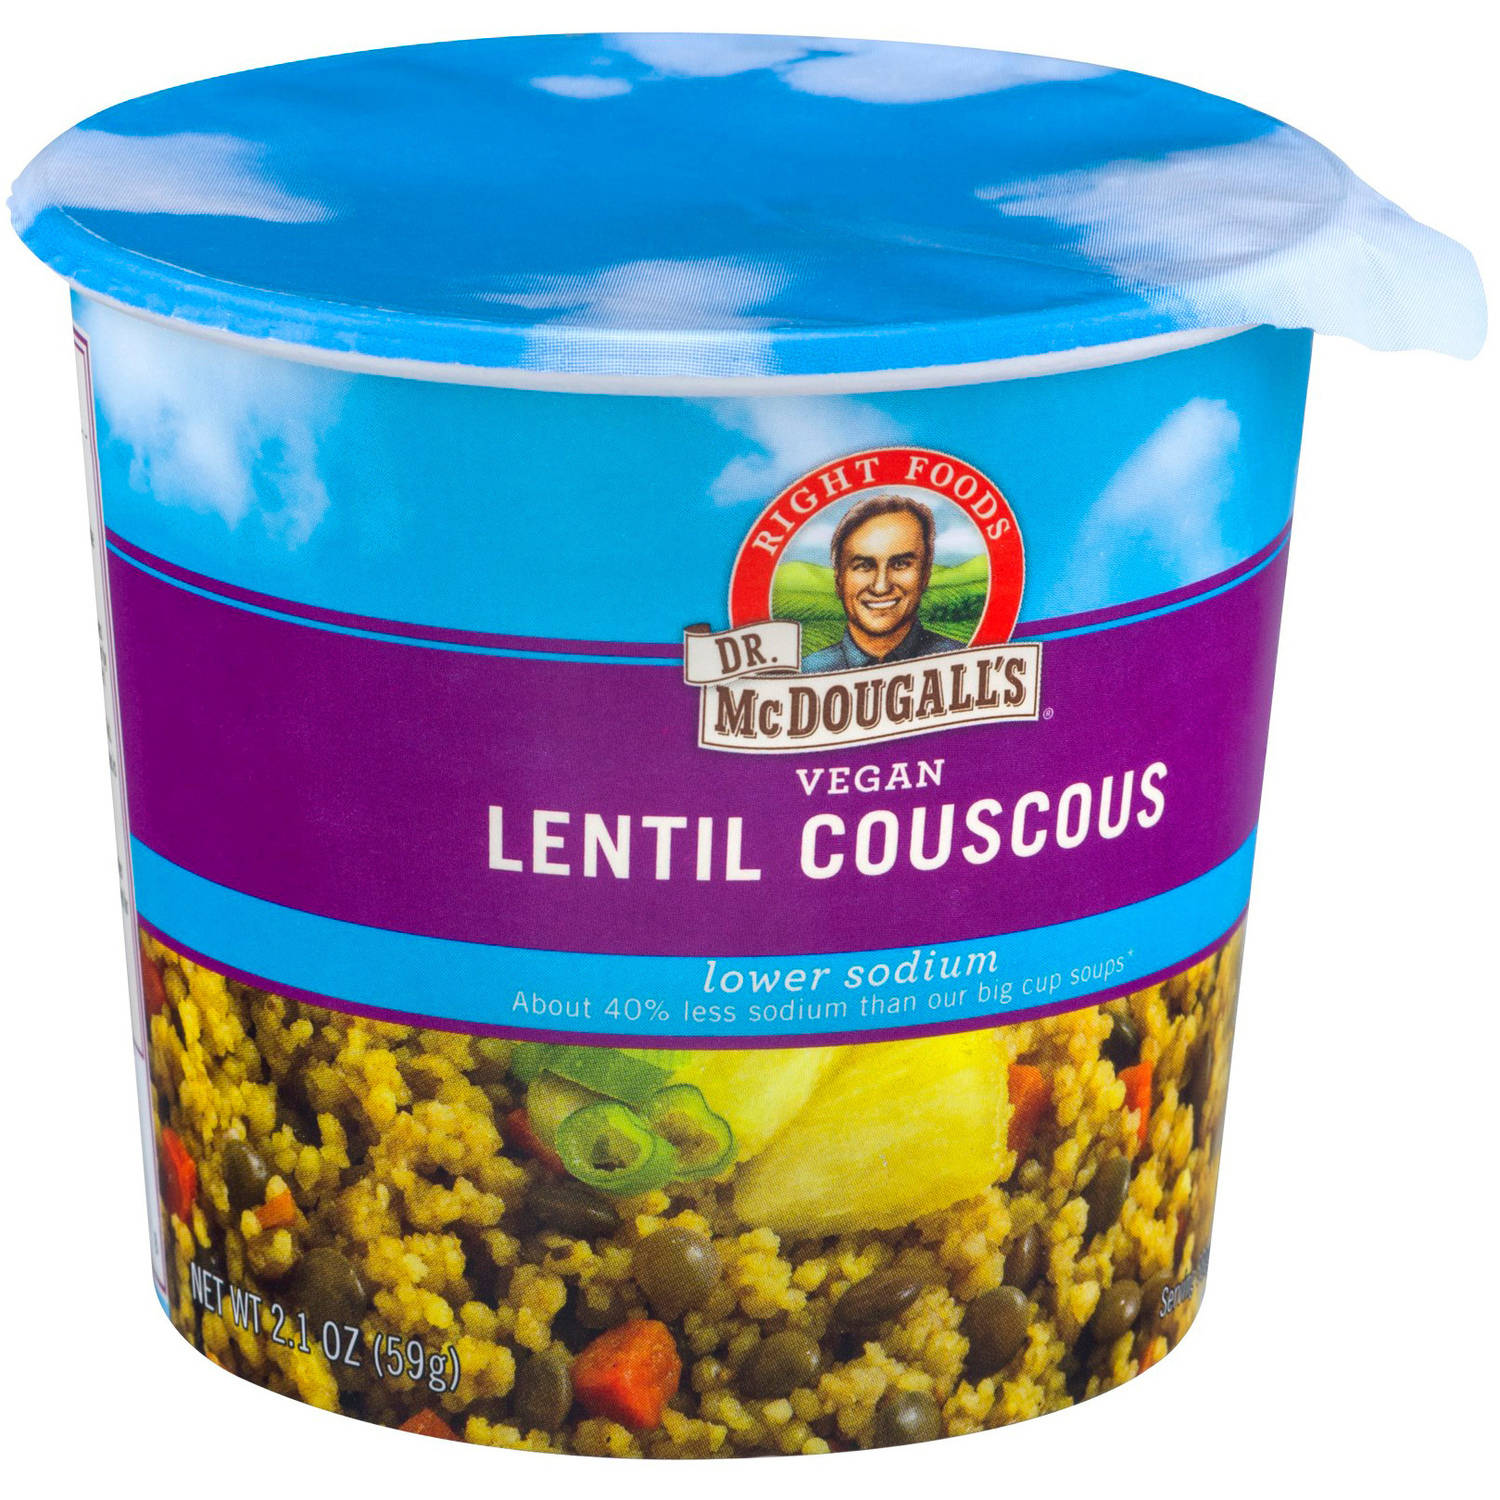 Dr. McDougall's Right Foods Lower Sodium Vegan Lentil Couscous, 2.1 oz, (Pack of 6) by